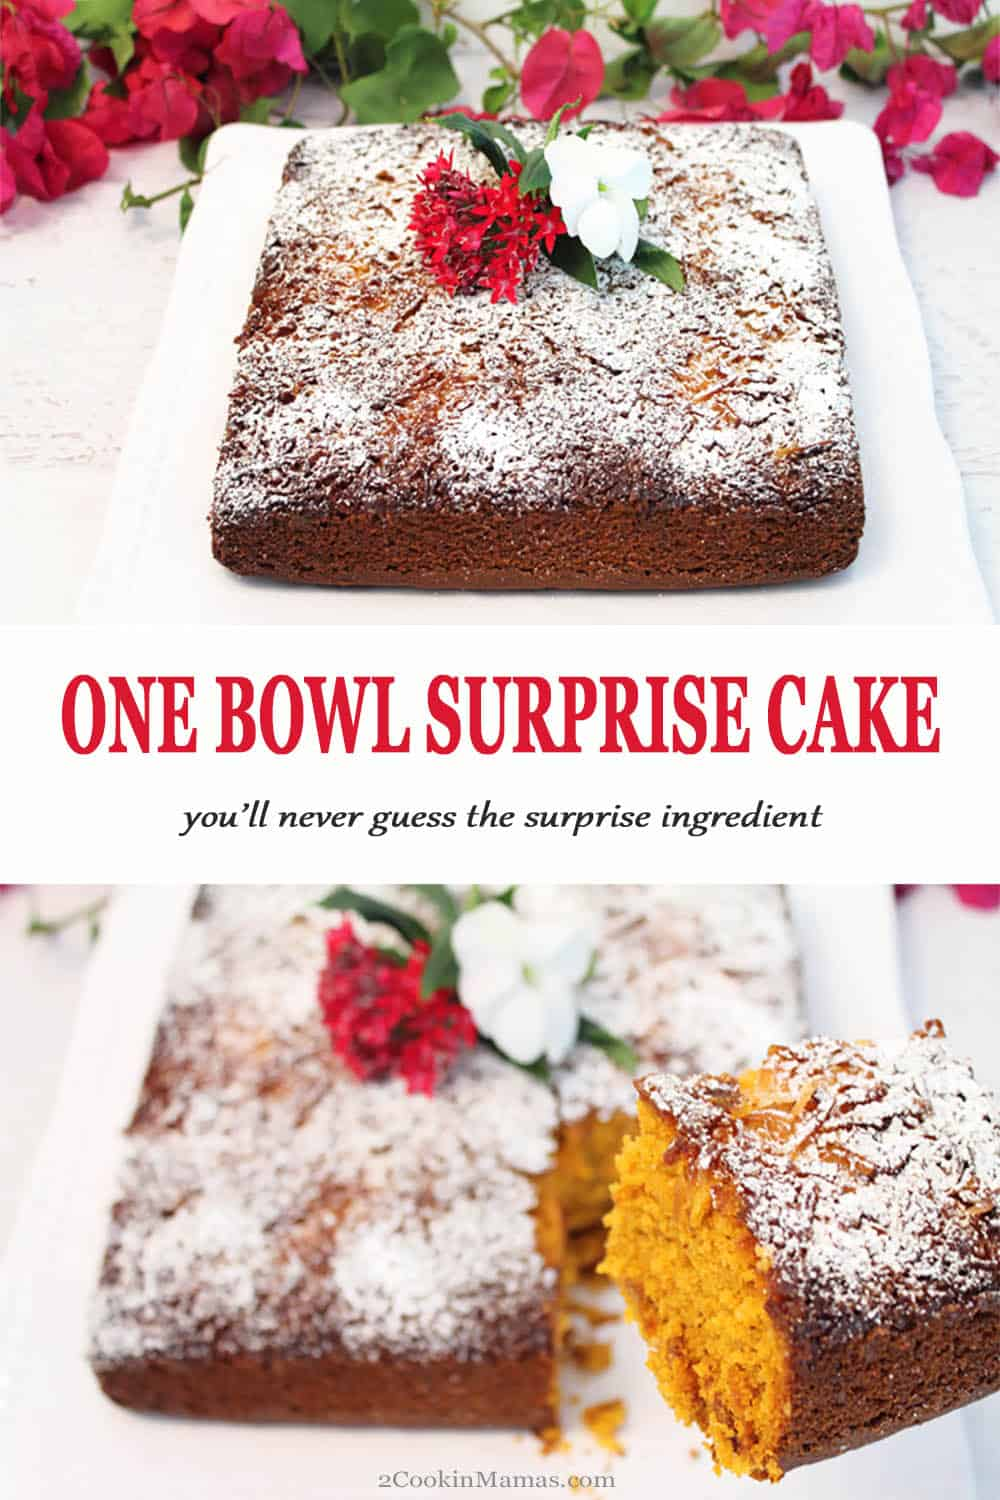 One Bowl Surprise Cake